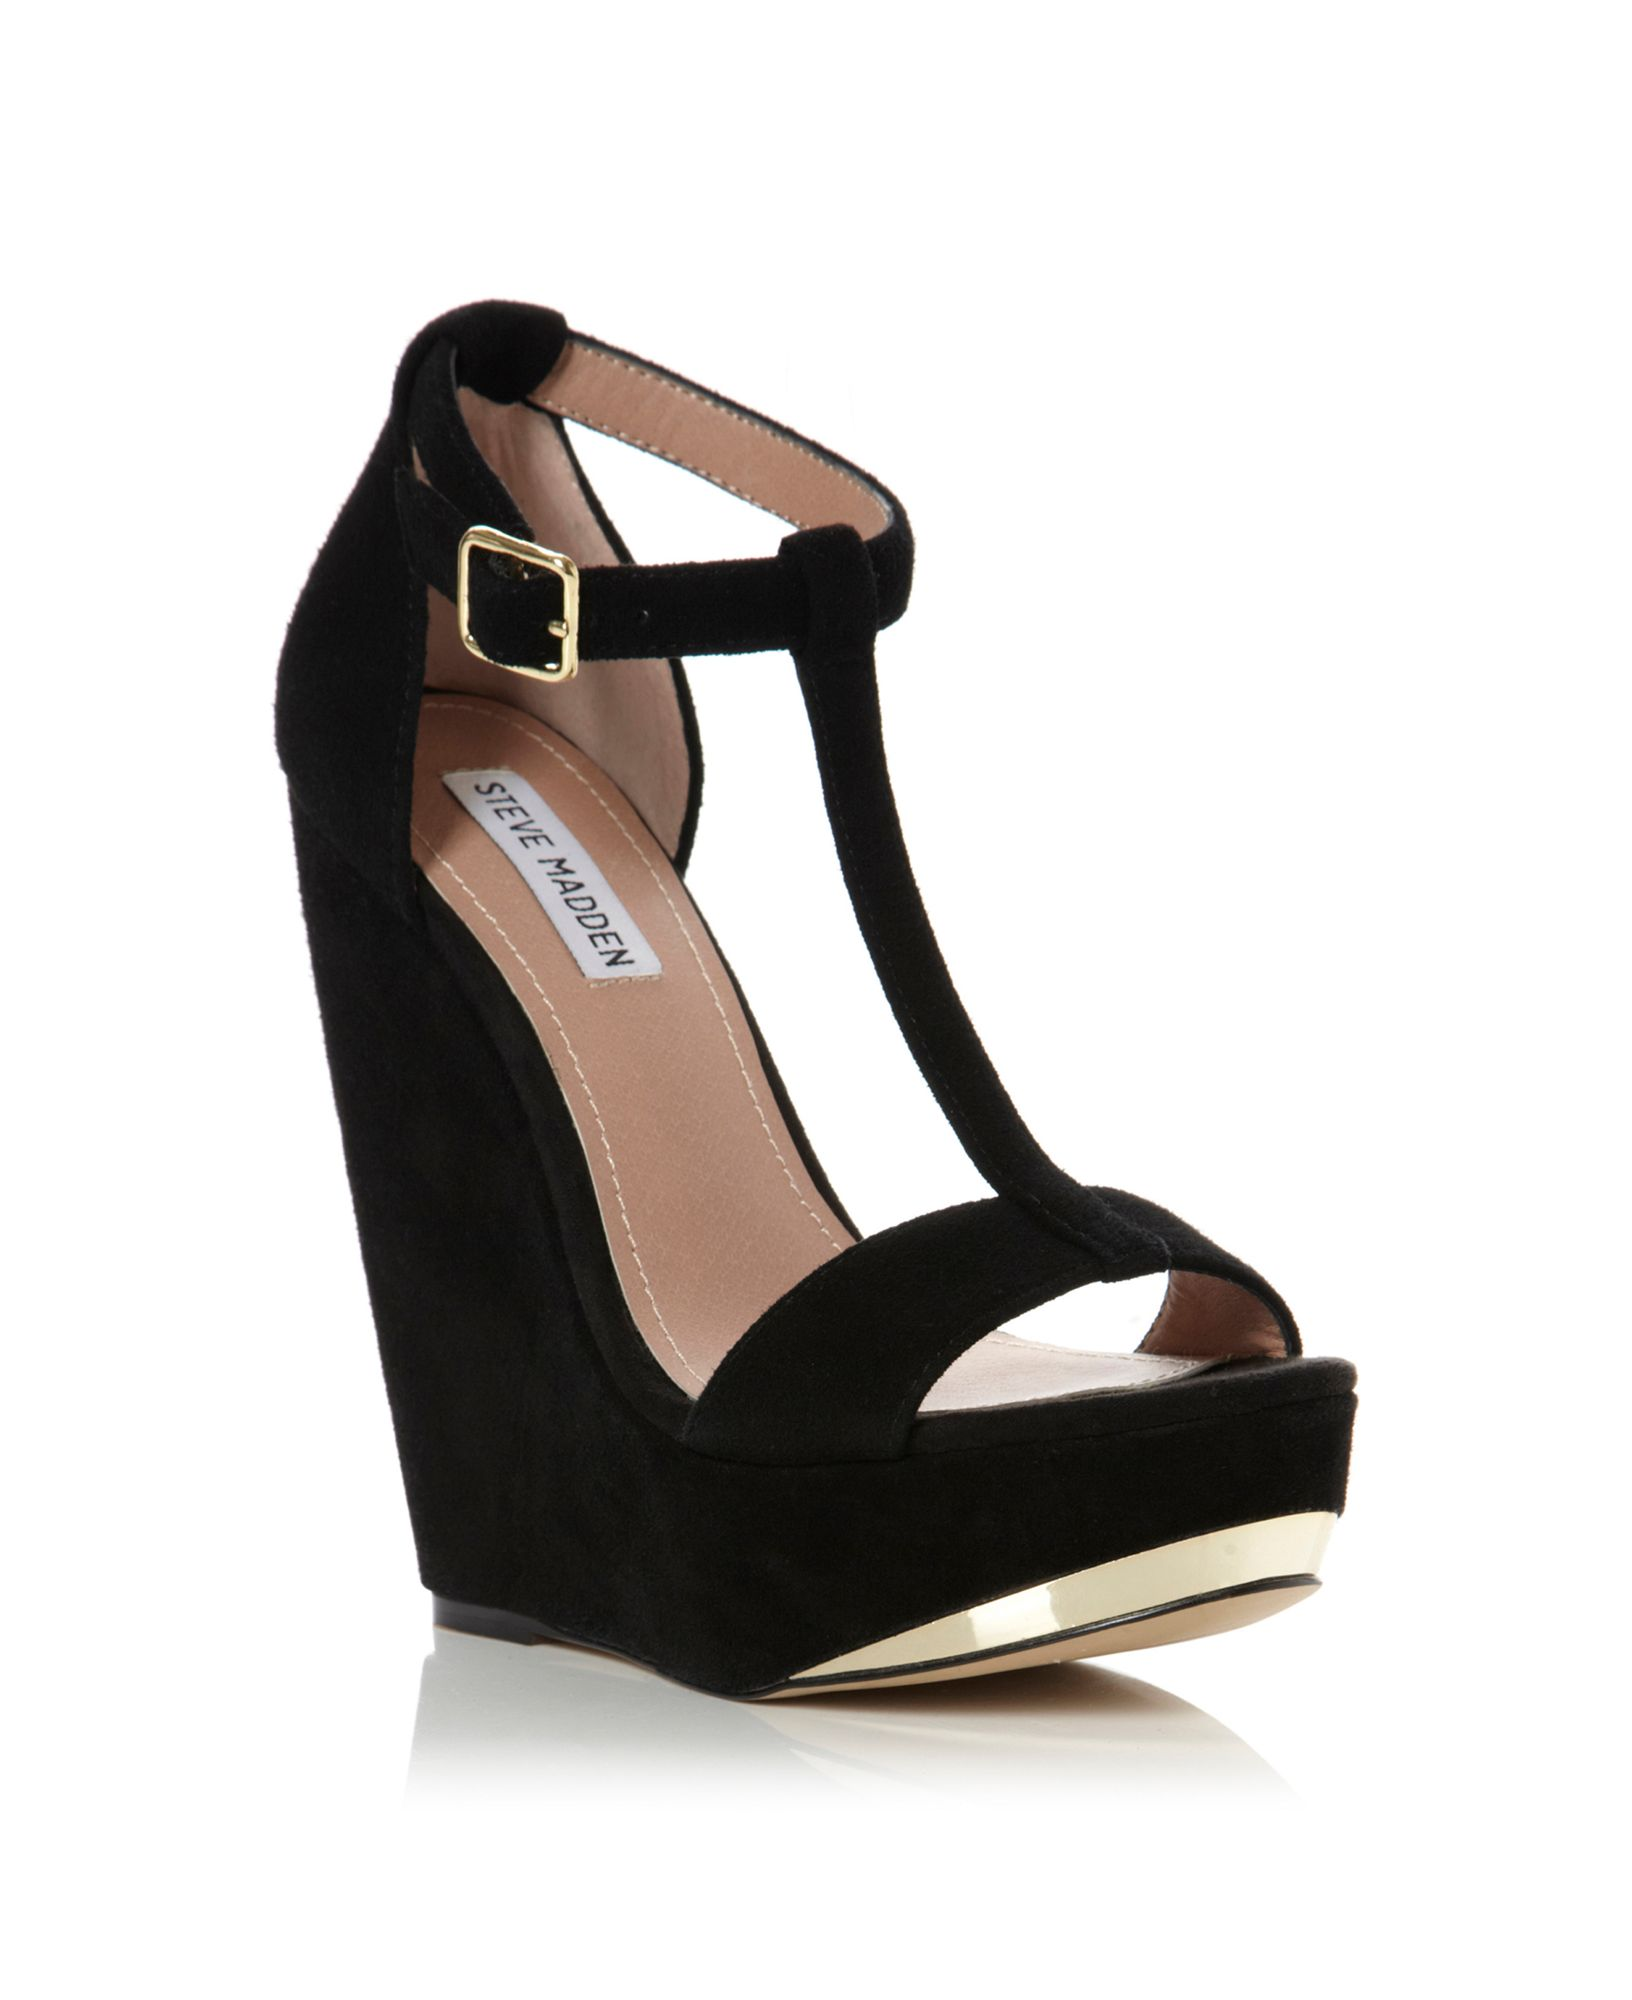 Steve Madden Xtreme Tbar Wedge Sandals In Black